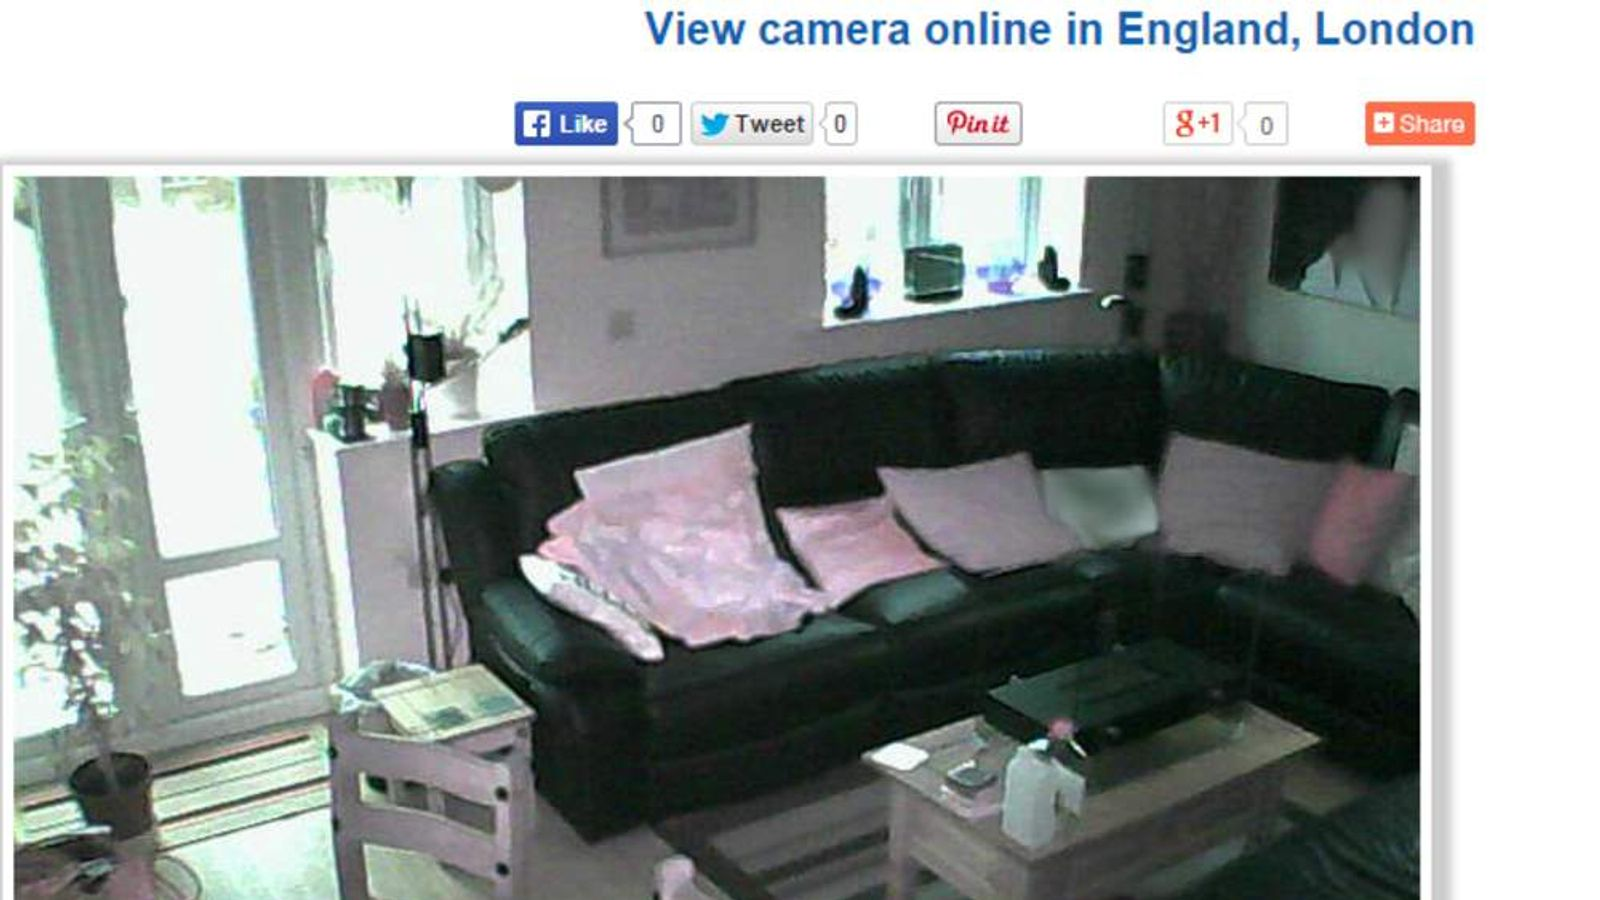 Webcams hacked by Russians